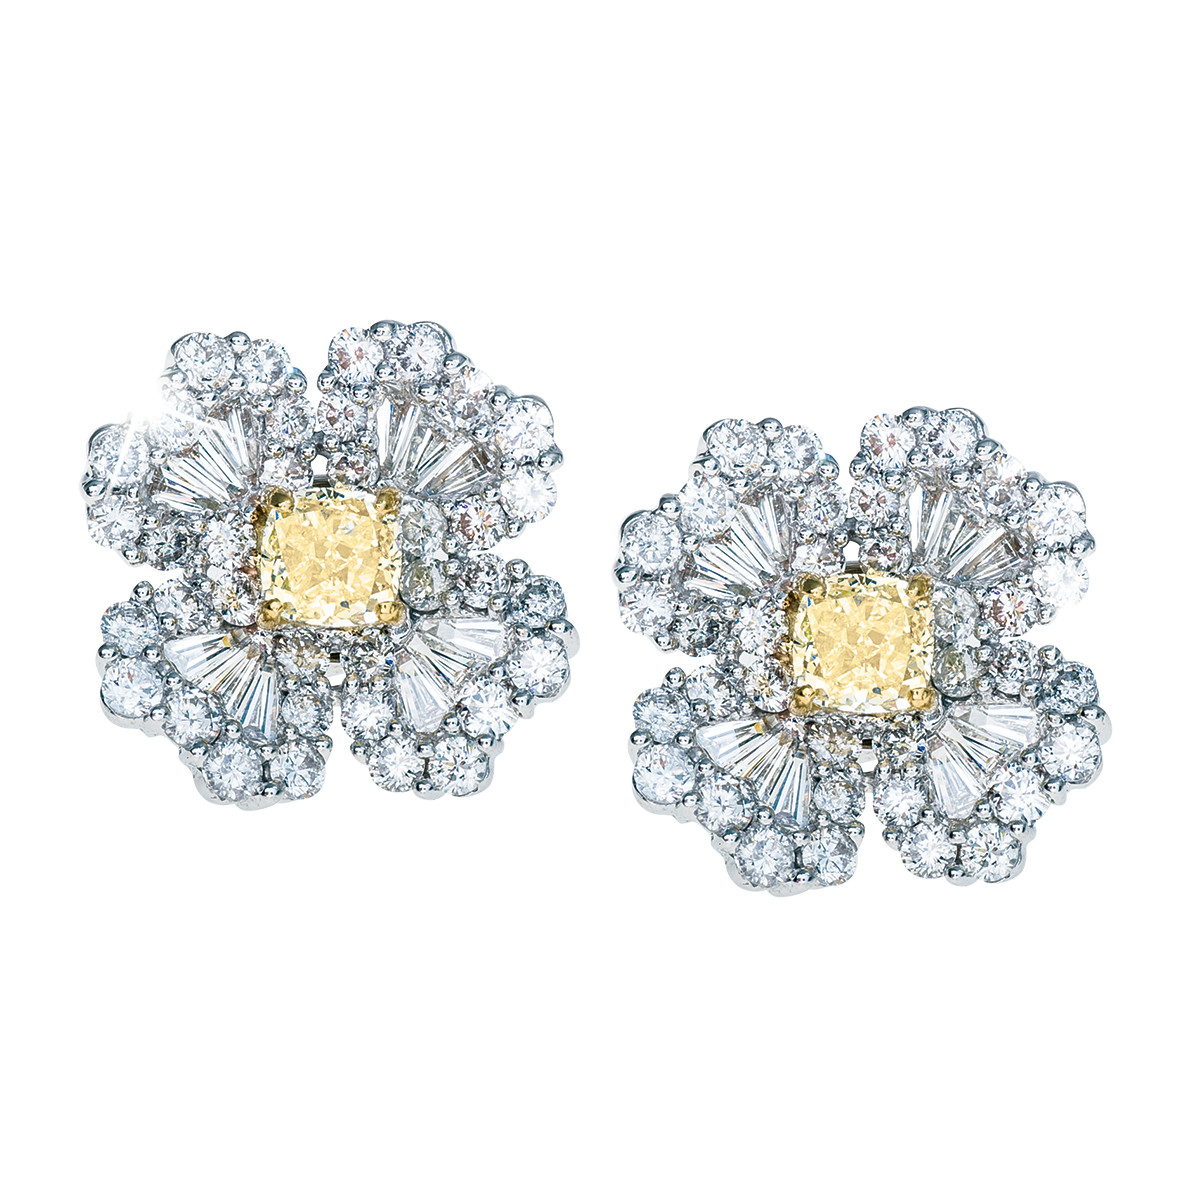 3.77 CTW White & Yellow Diamond Earrings